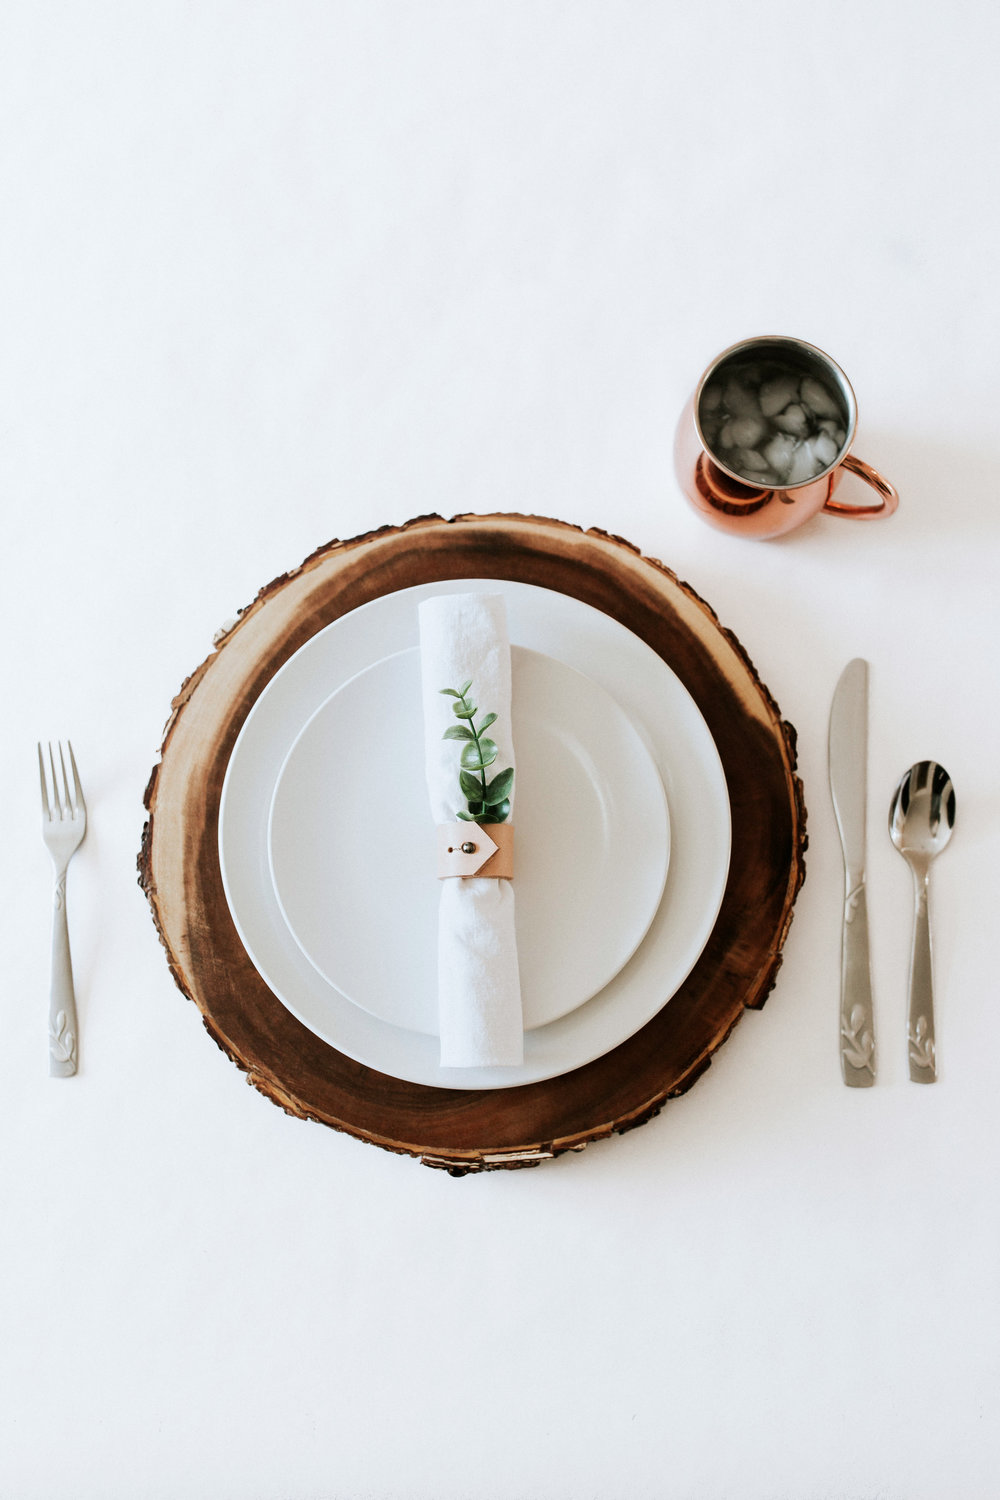 How to create / DIY a natural minimal table setting - wood charger, white plates, white napkin, leather napkin rings, greenery